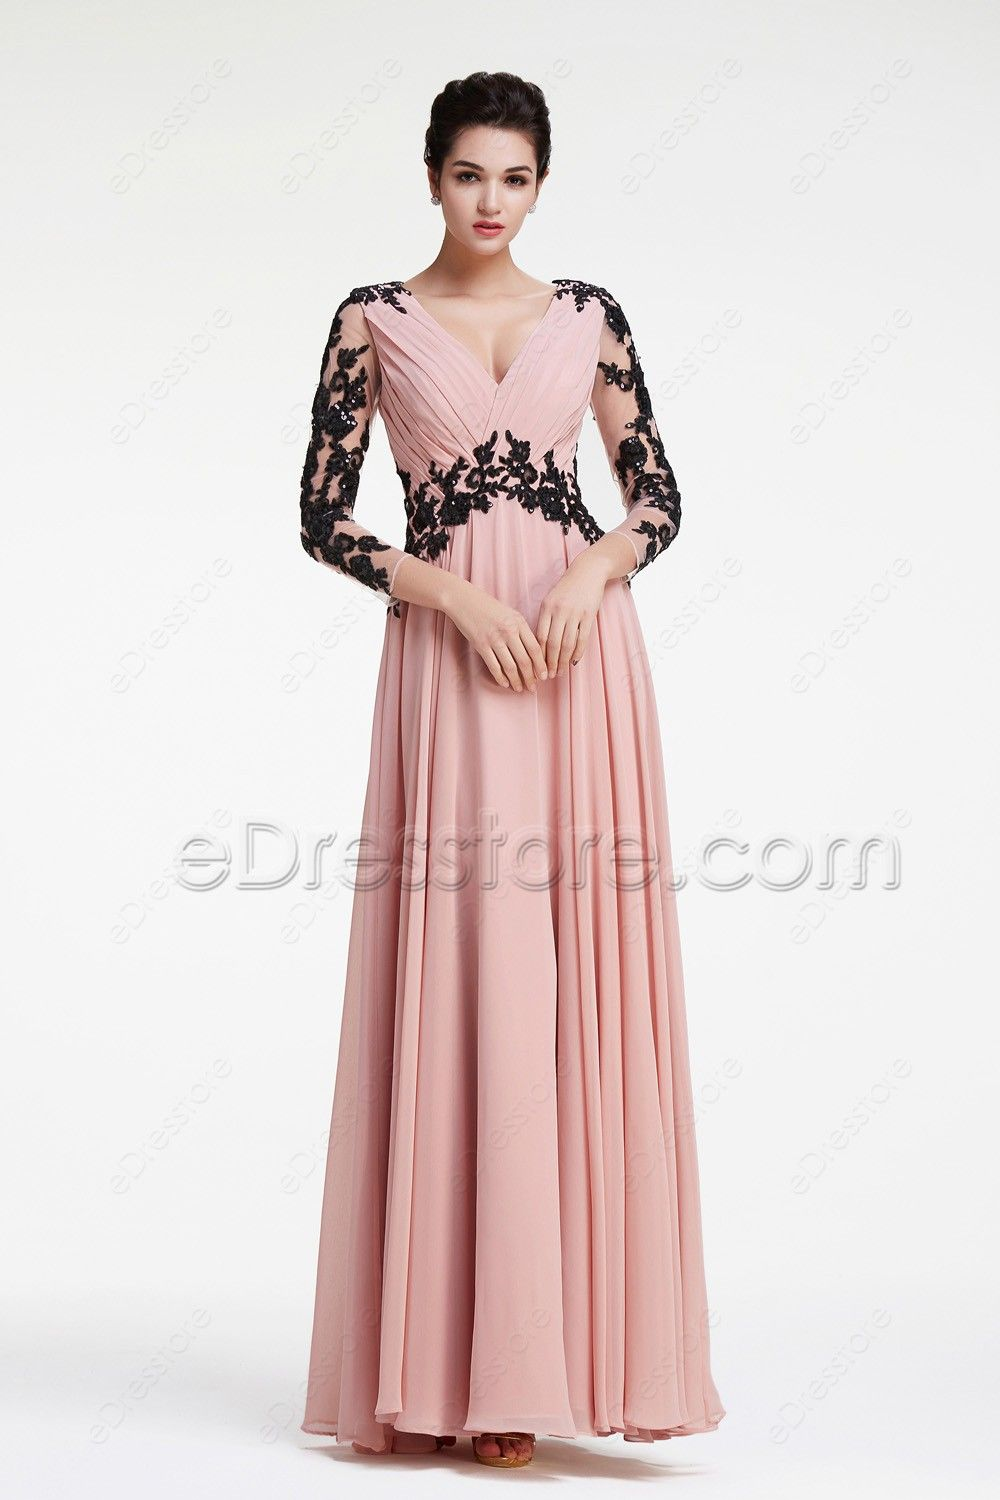 Modest Dusty Rose Prom Dresses Long Sleeves   Dusty rose, Pleated ...